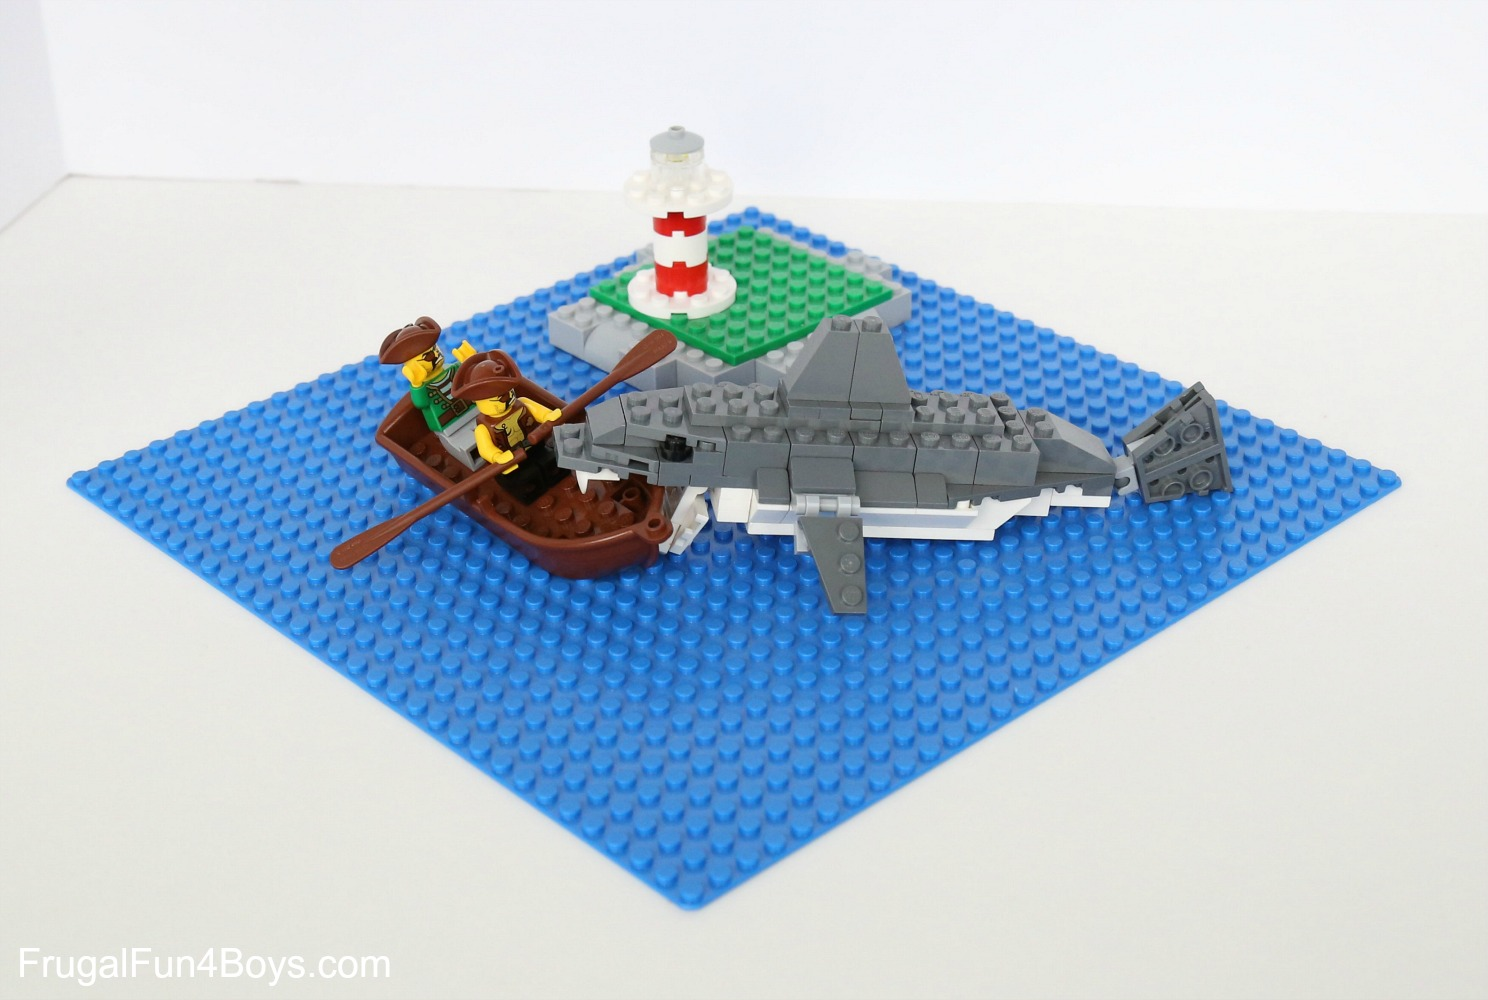 How To Build An Awesome Lego Shark Frugal Fun For Boys And Girls